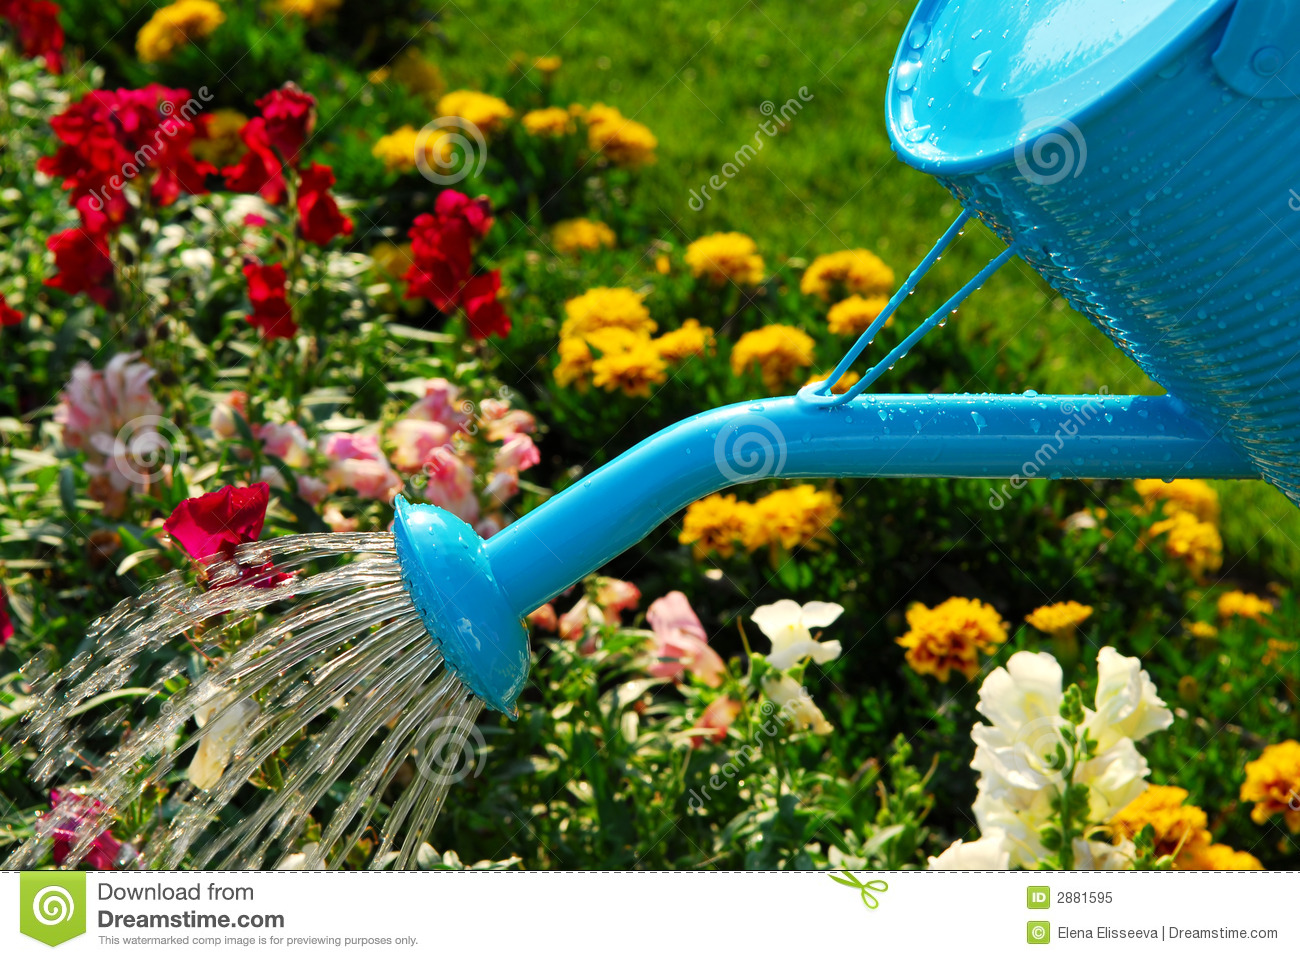 Water pouring from blue watering can onto blooming flower bed.